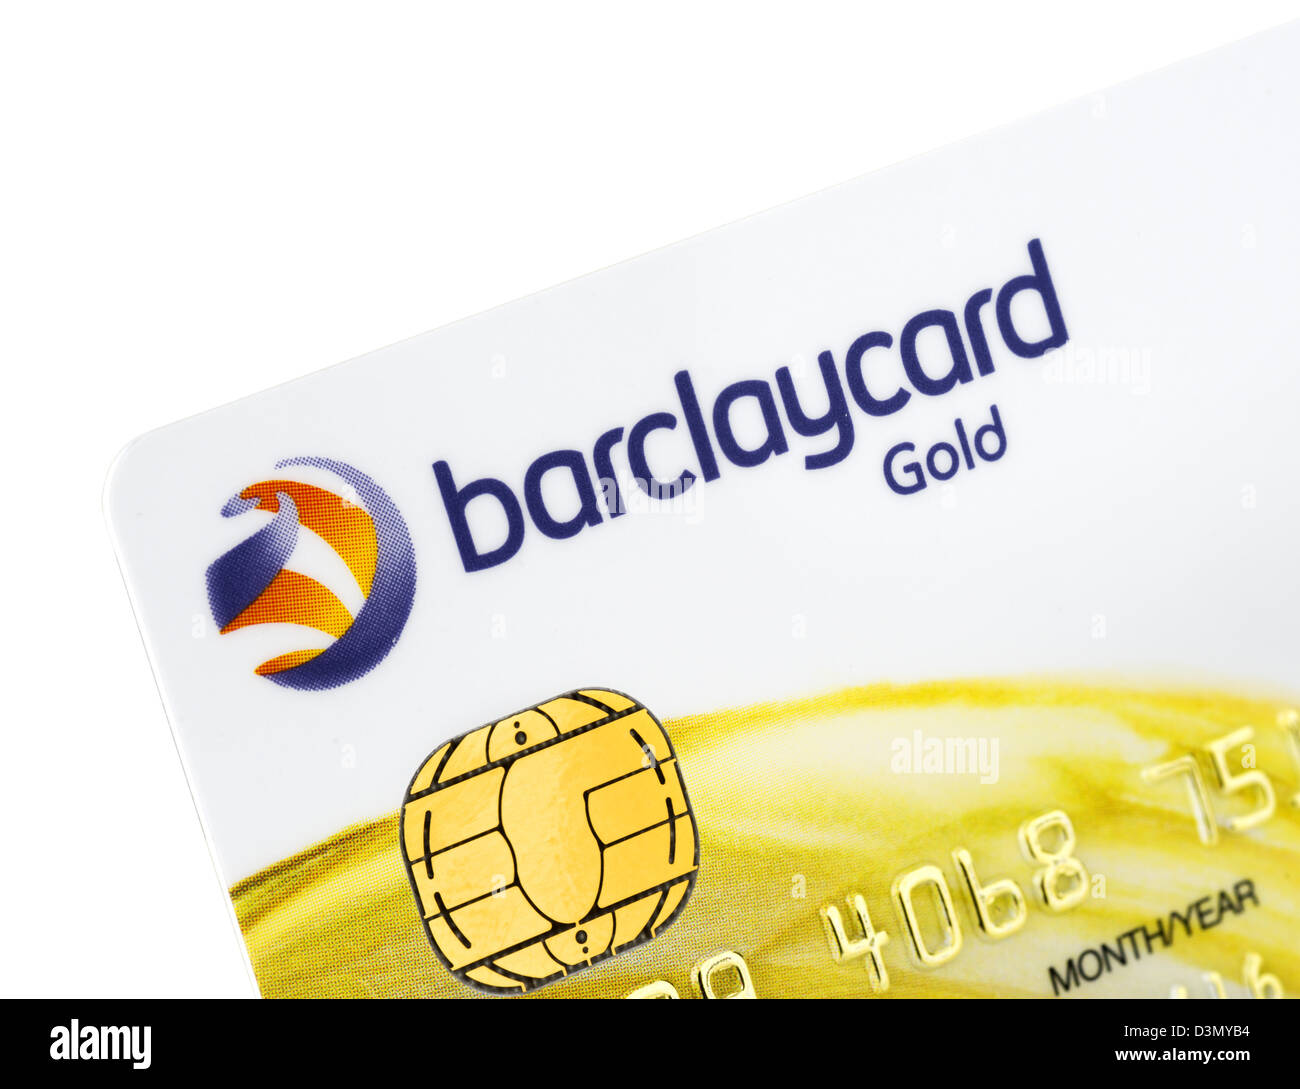 Barclaycard Gold VISA credit card issued in the UK - Stock Image